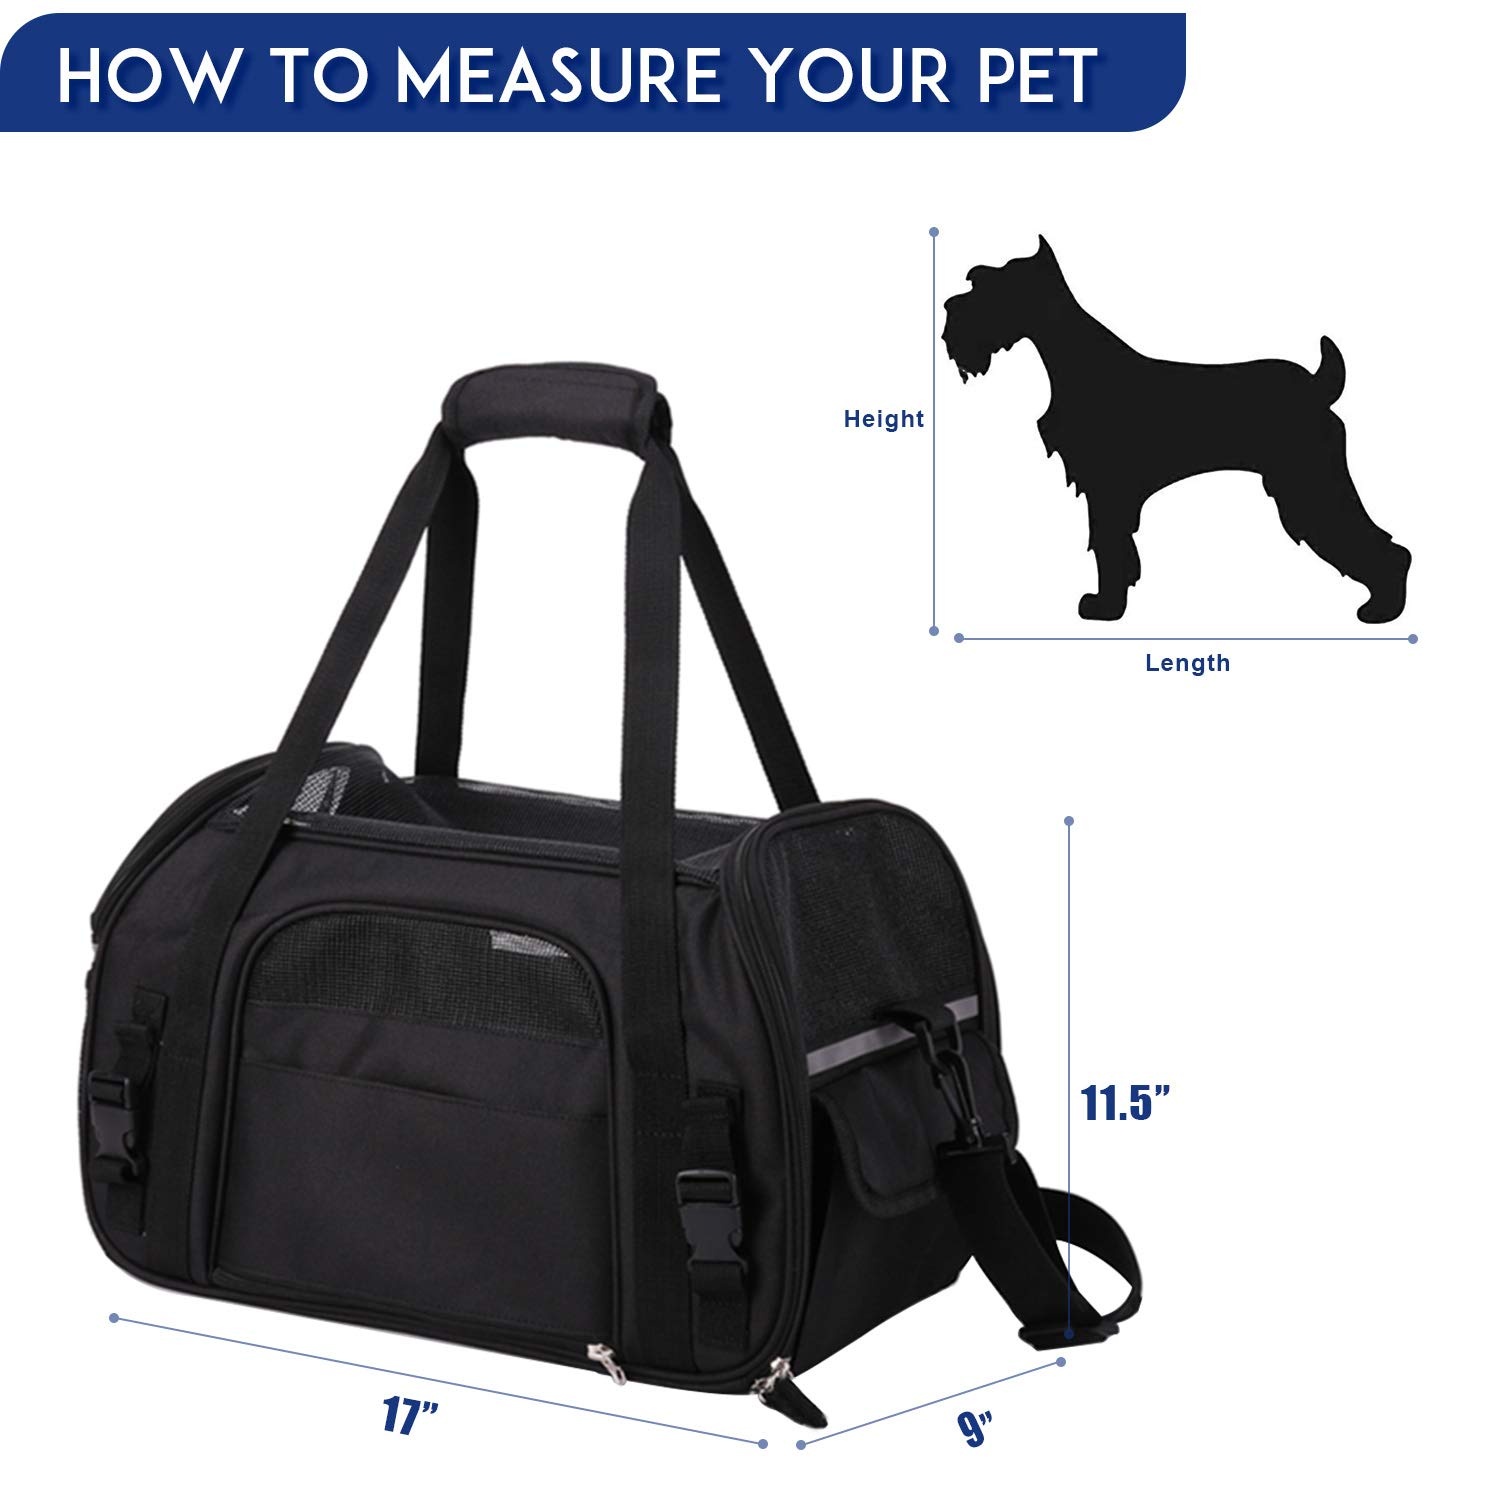 JESPET Soft Sided Pet Carrier Comfort for Airline Travel for Small Animals/Cats/Kitten/Puppy, Black, 17'' x 9'' x 11.5'' by JESPET